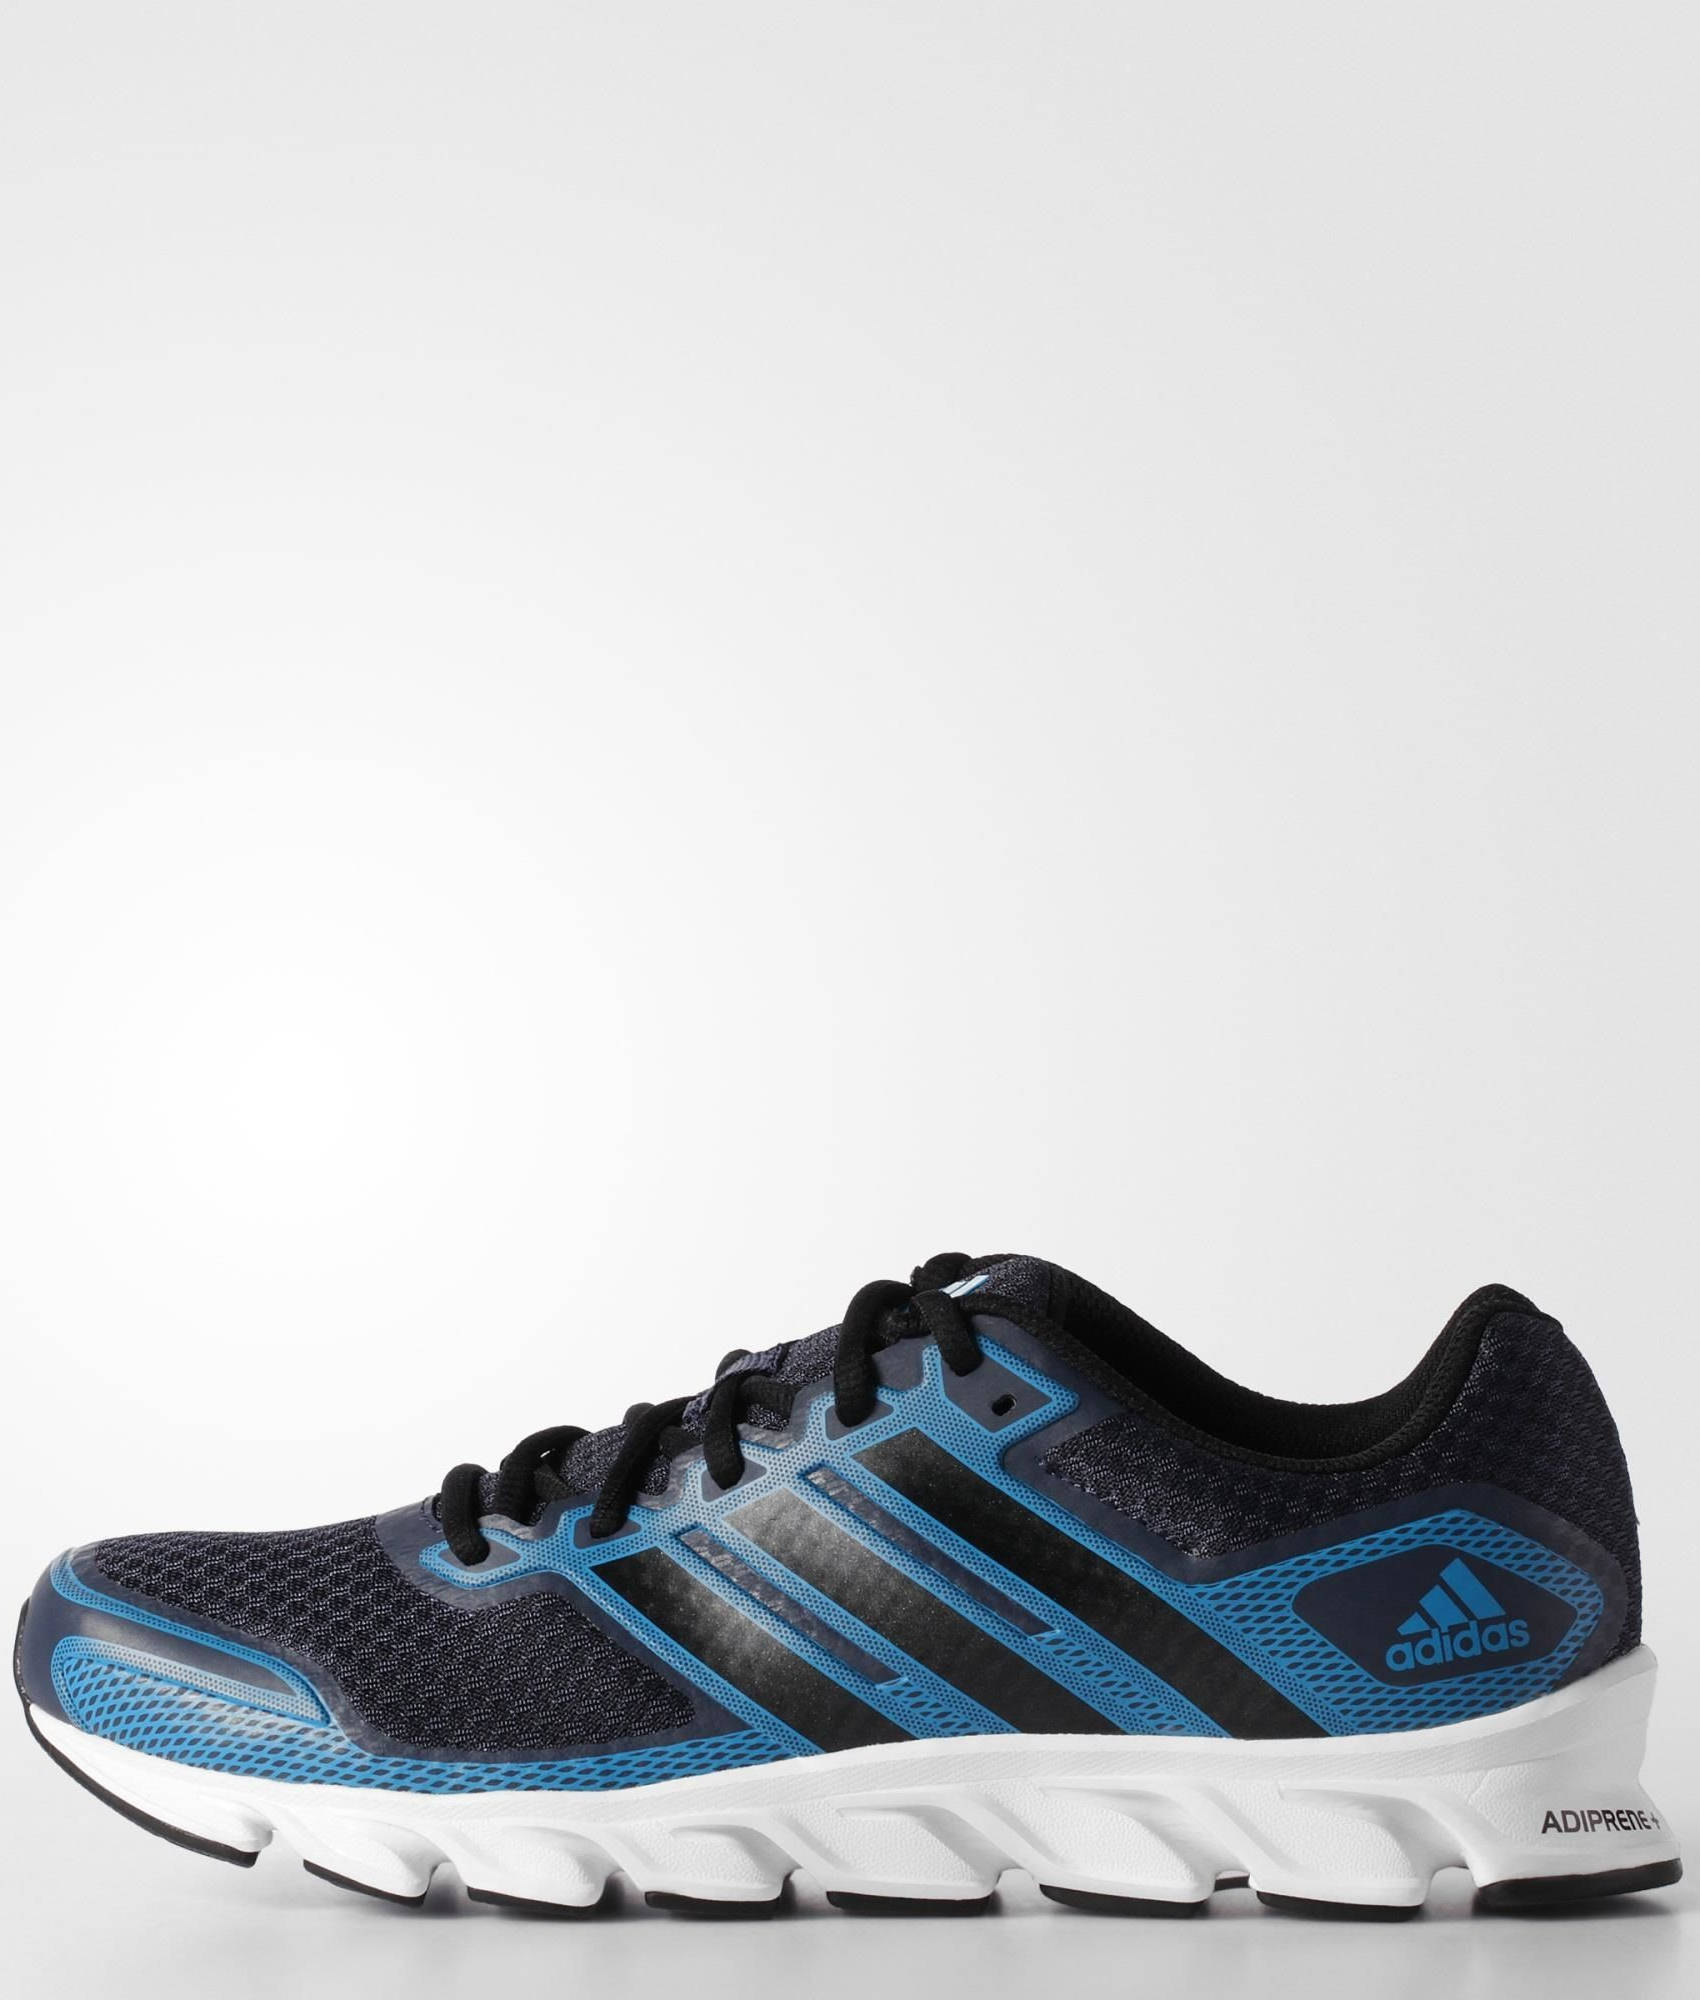 Adidas Galaxy M Running Shoes